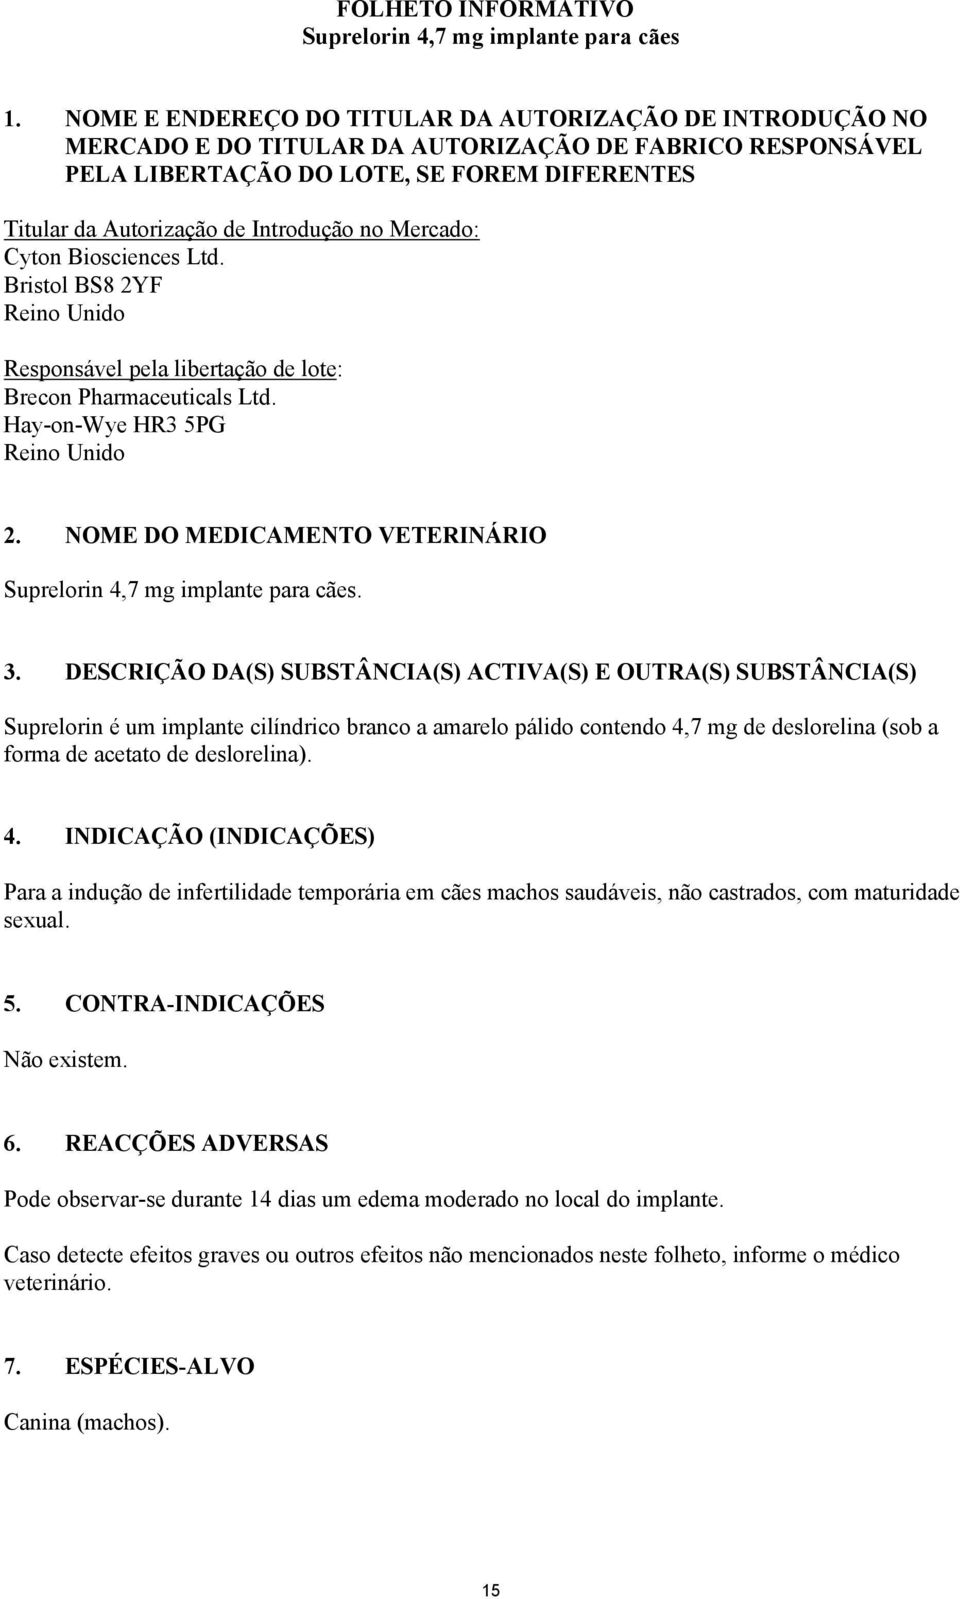 no Mercado: Cyton Biosciences Ltd. Bristol BS8 2YF Reino Unido Responsável pela libertação de lote: Brecon Pharmaceuticals Ltd. Hay-on-Wye HR3 5PG Reino Unido 2.